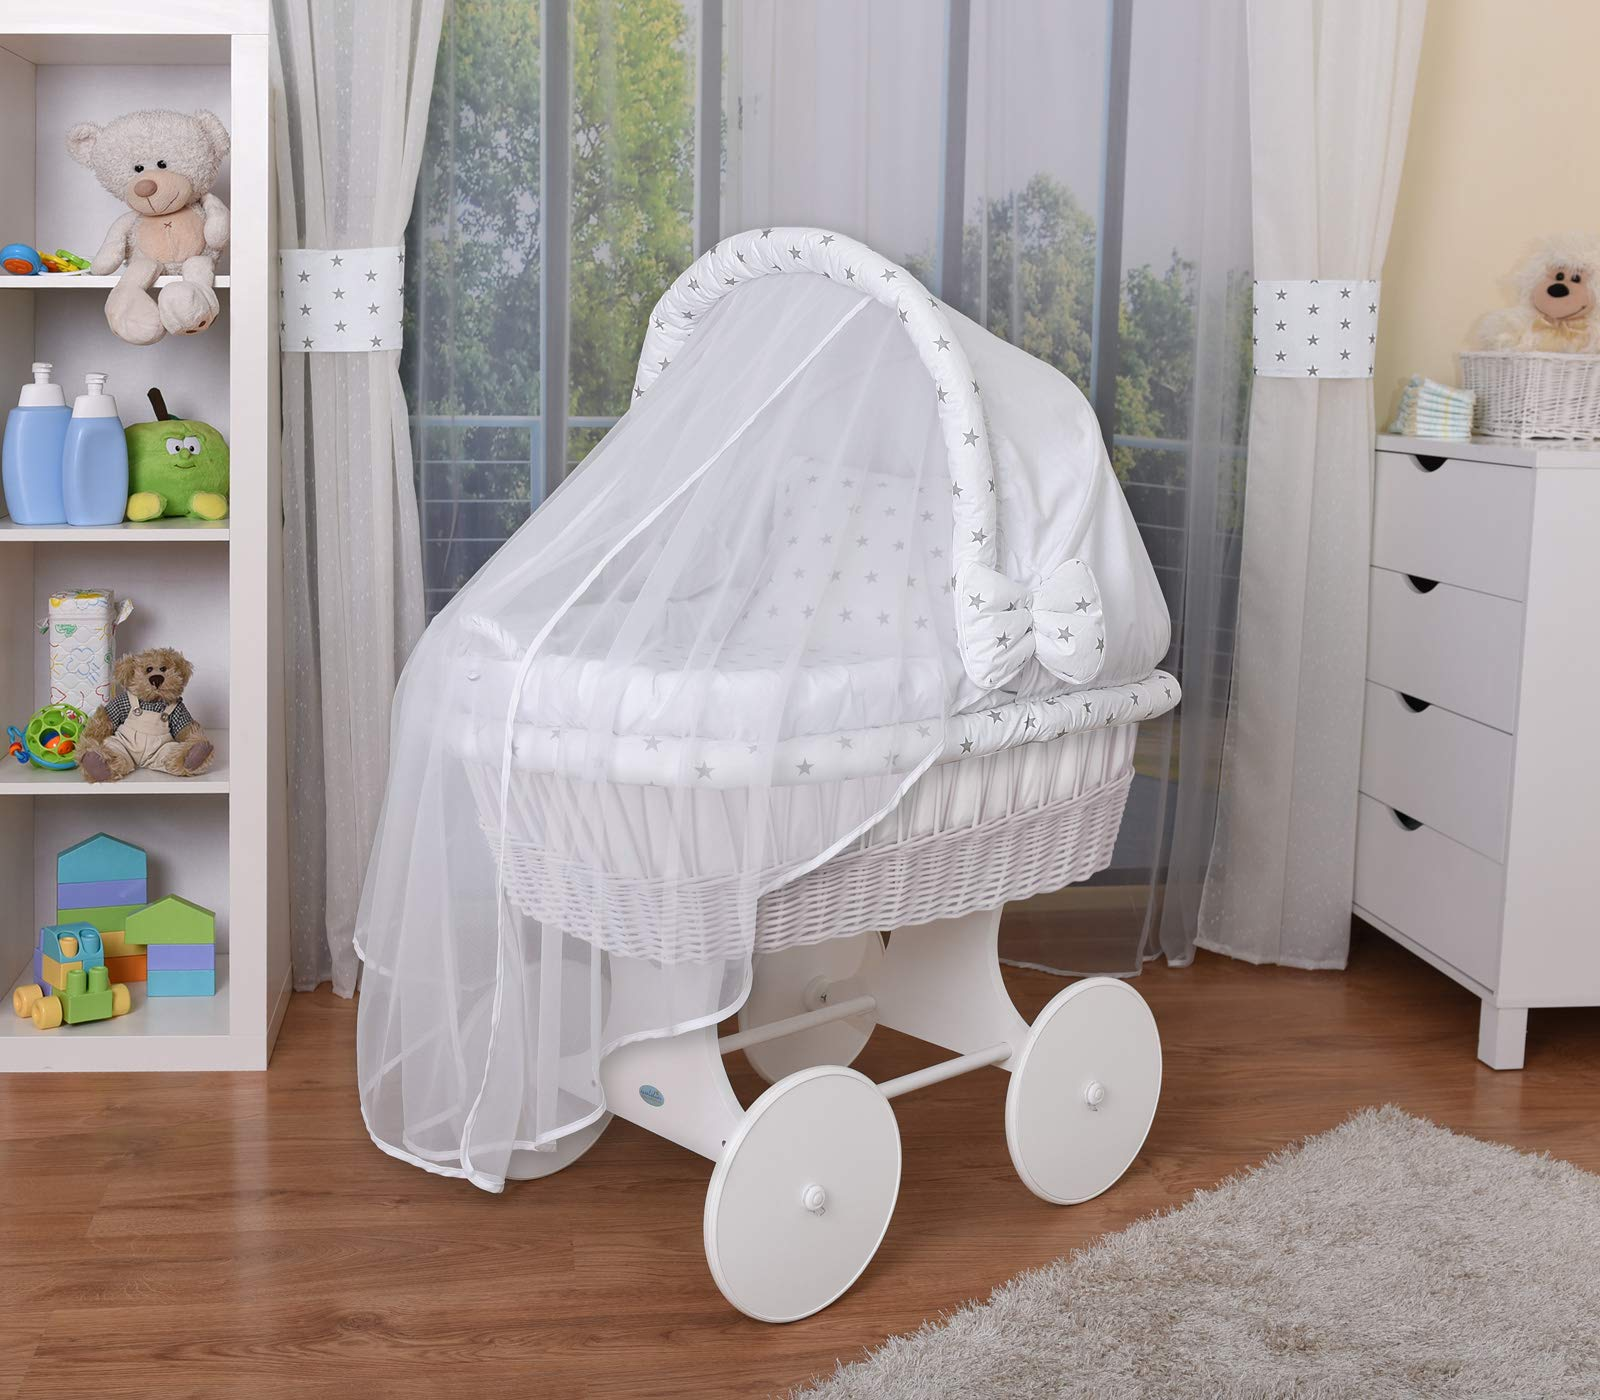 WALDIN Baby Wicker Cradle,Moses Basket,44 Models Available,White Painted Stand/Wheels,Textile Colour White/Grey Stars  For more models and colours on Amazon click on WALDIN under the title Bassinet complete with bedding and stand Certified to safety standard EN 1130-1/2 2